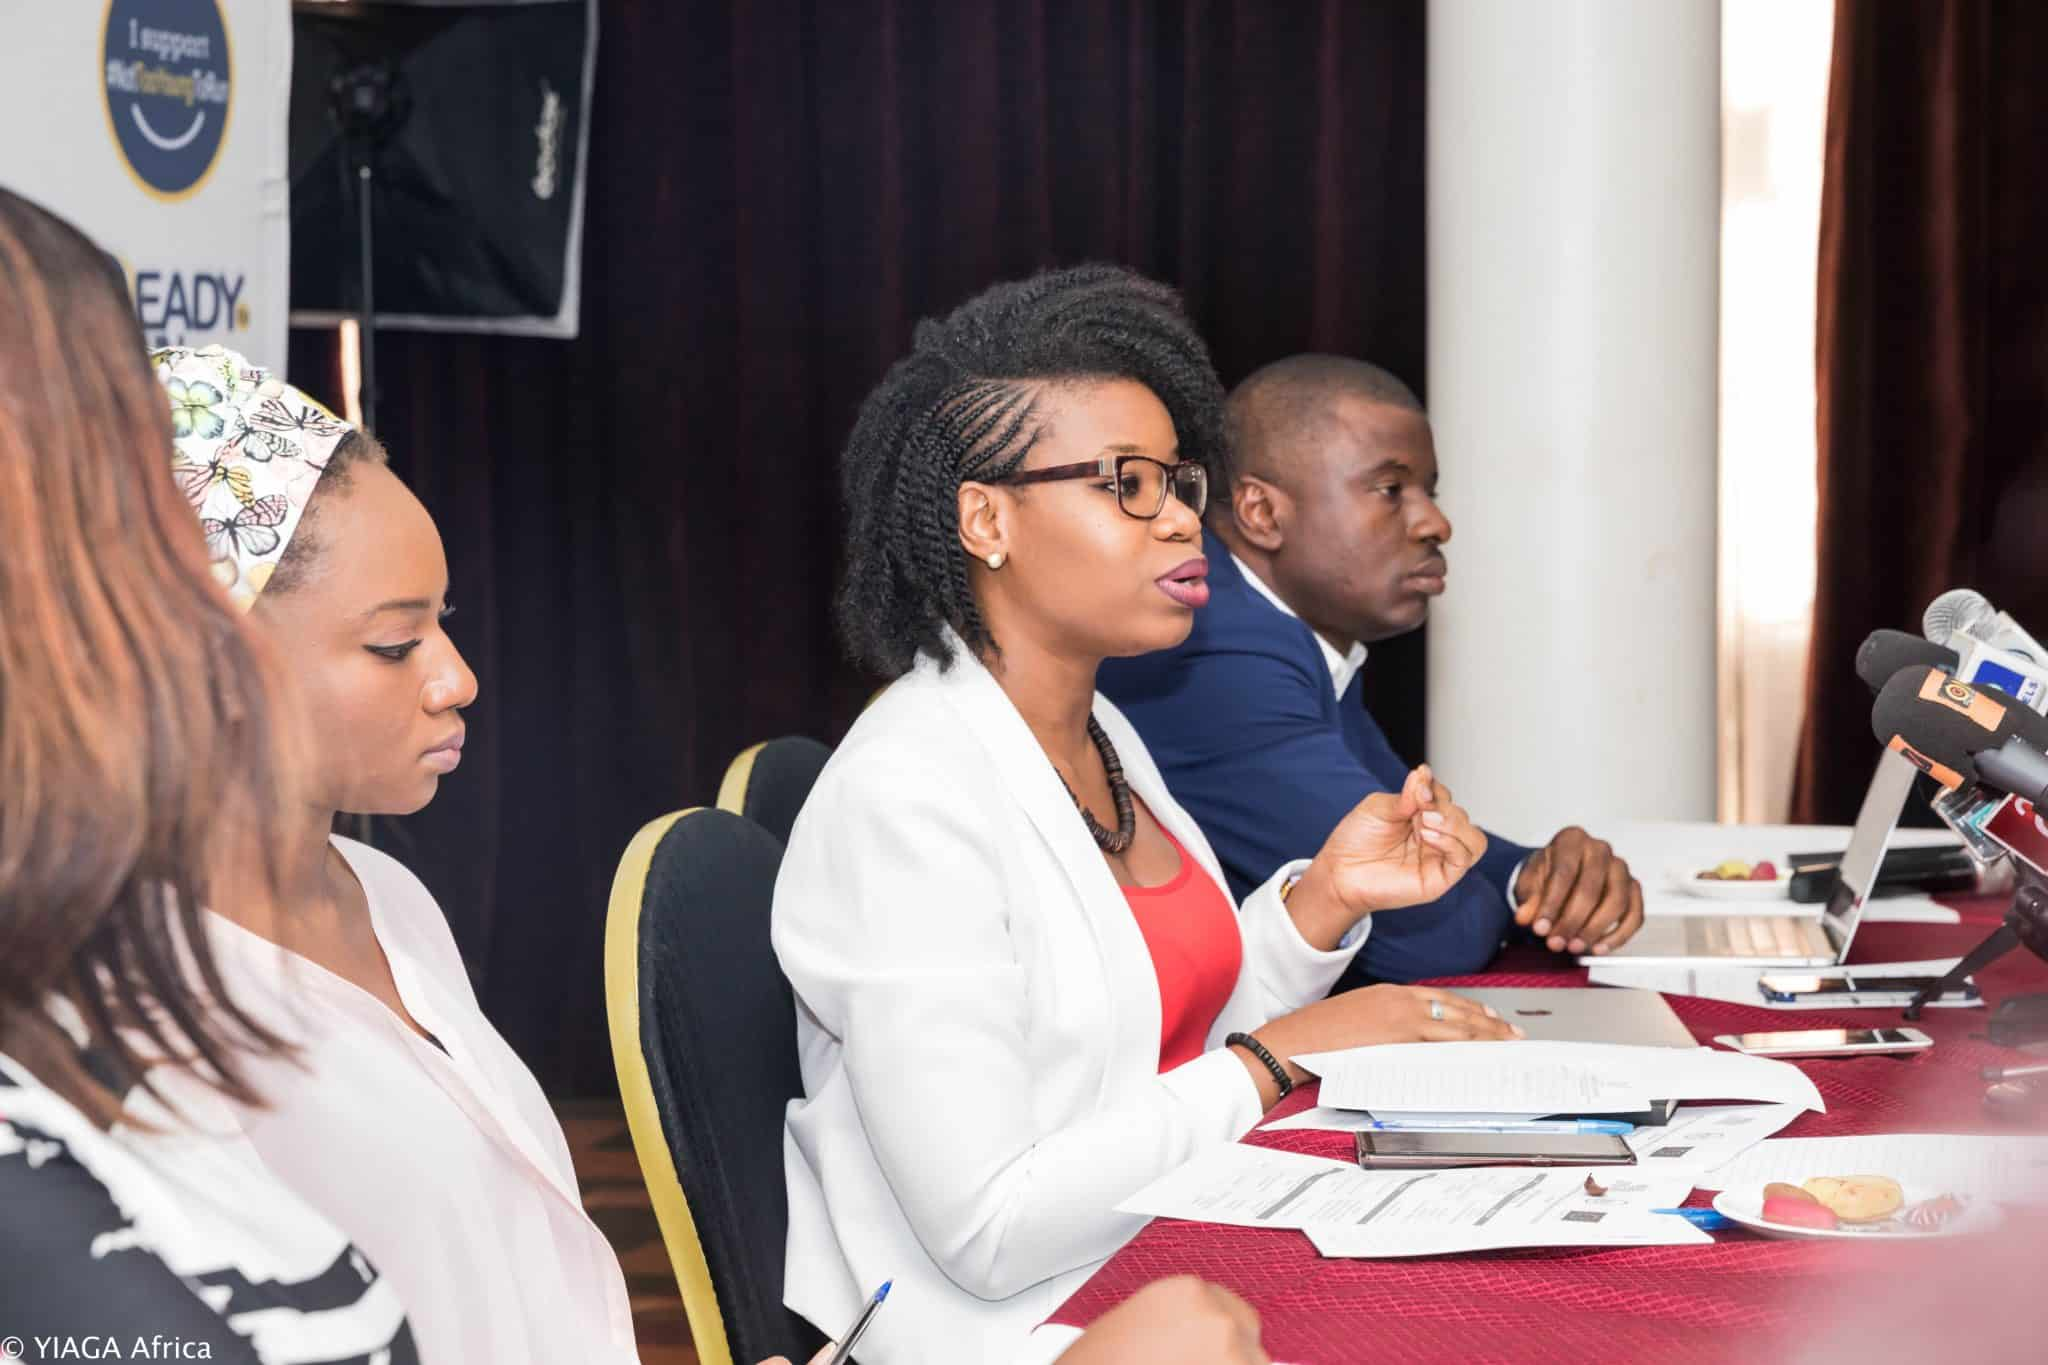 YIAGA Africa, hosts town hall meeting with the young women of Election 2019